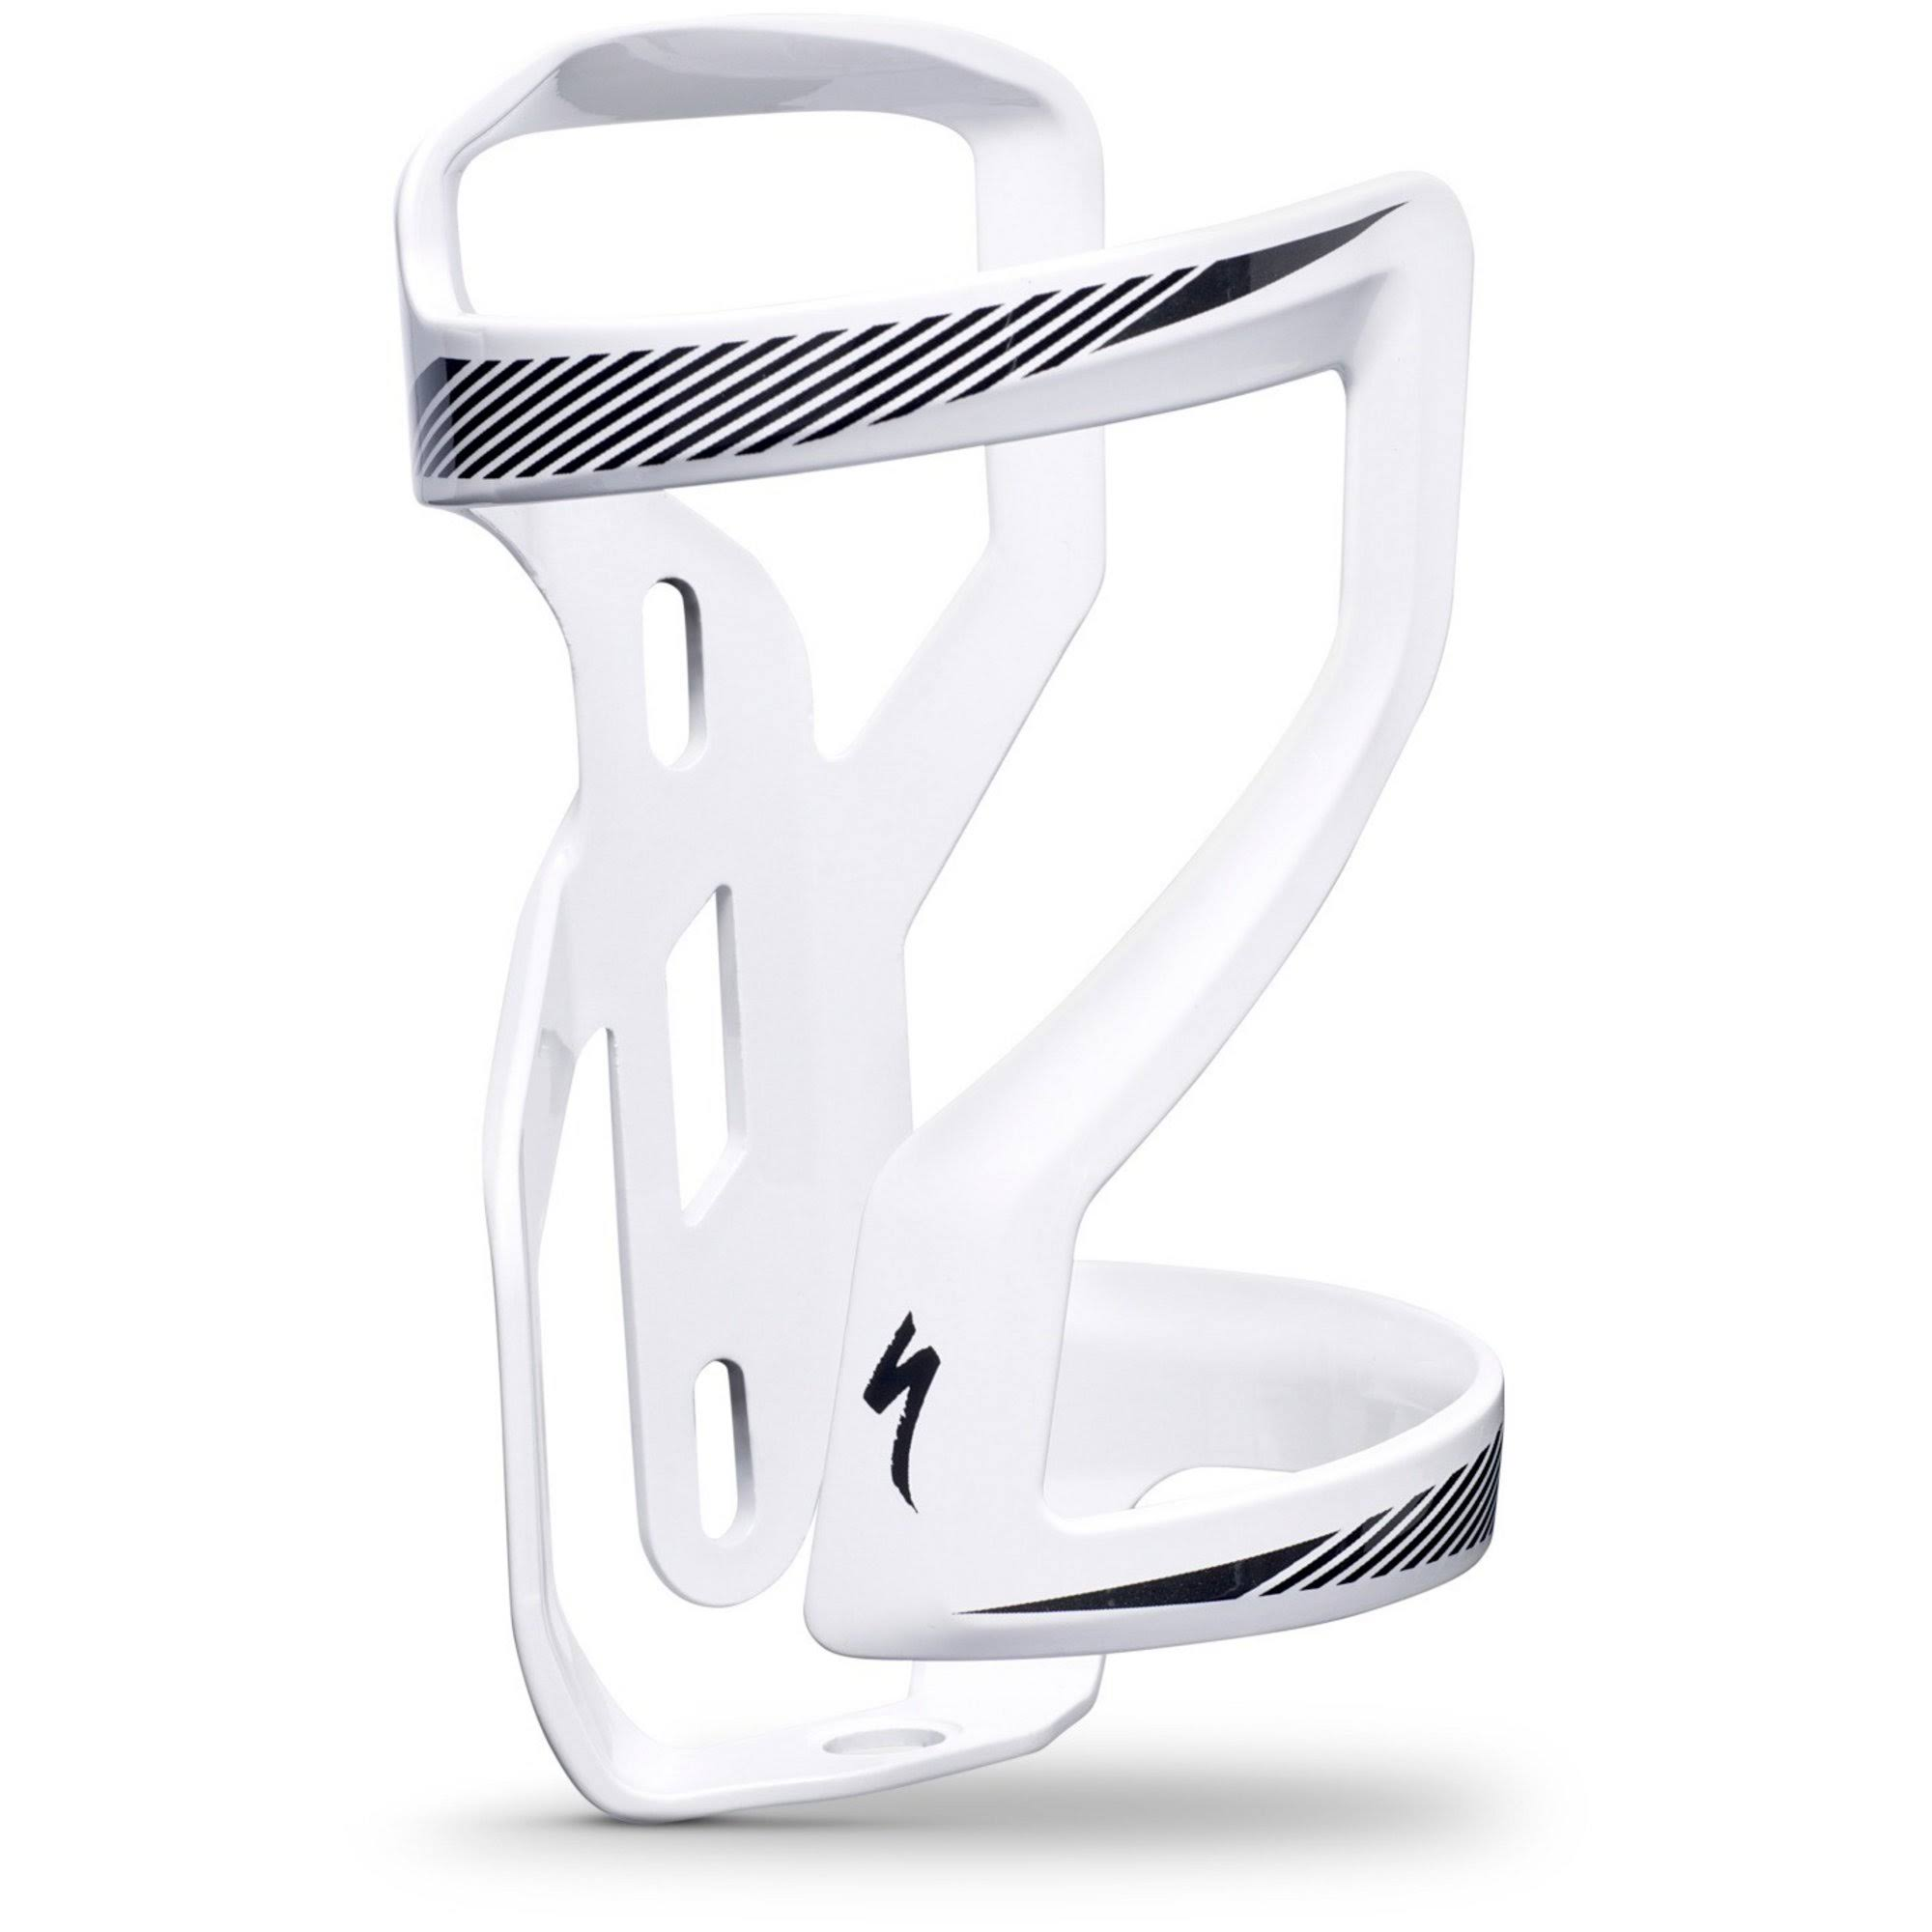 Specialized Zee Cage II Right - White/Black